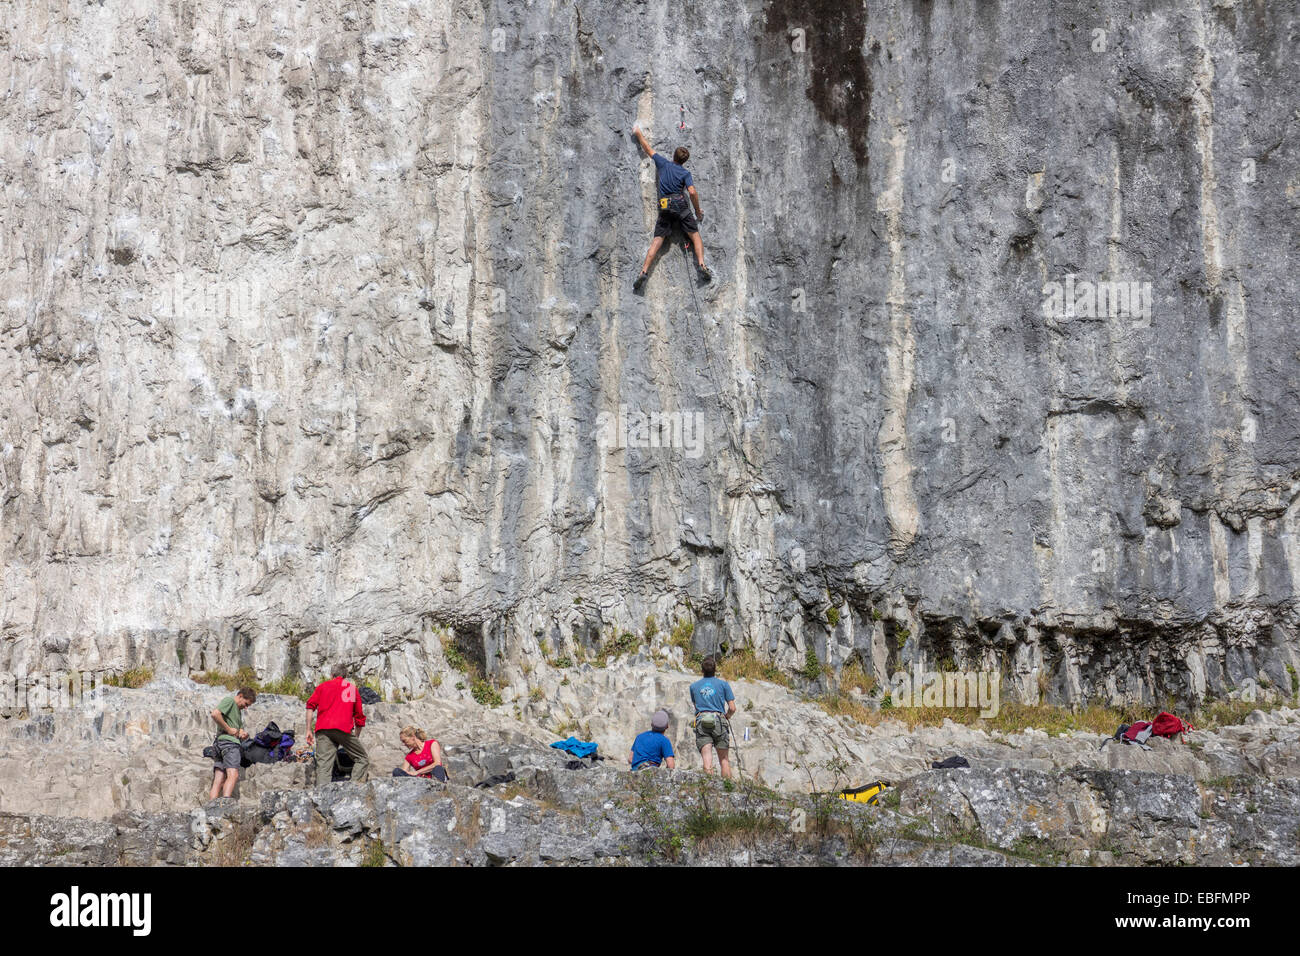 Climbers on Malham Cove, North Yorkshire. - Stock Image